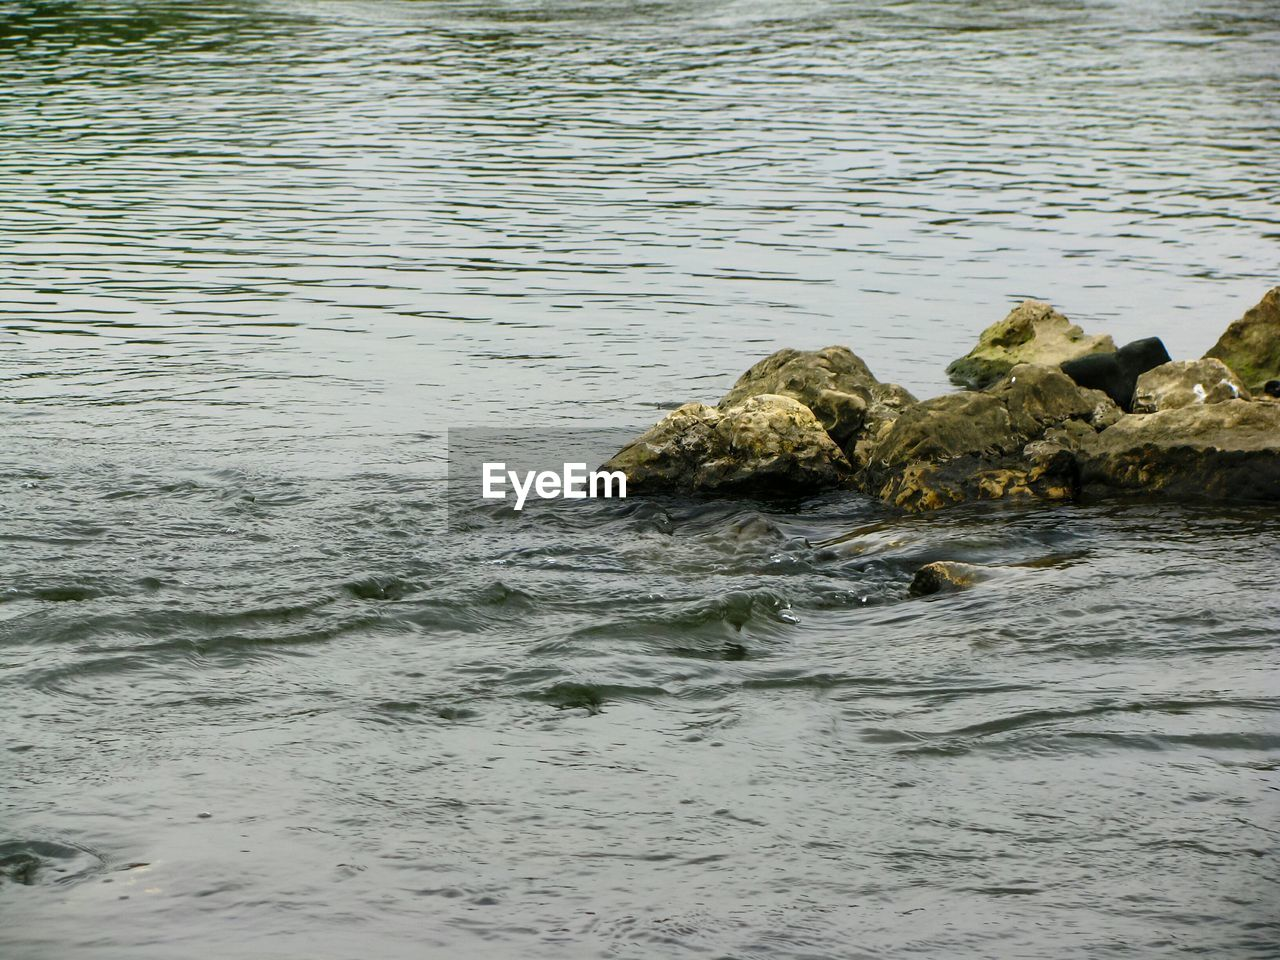 water, waterfront, sea, reptile, animals in the wild, animal wildlife, animal, no people, animal themes, nature, vertebrate, day, rock, rock - object, crocodile, outdoors, solid, rippled